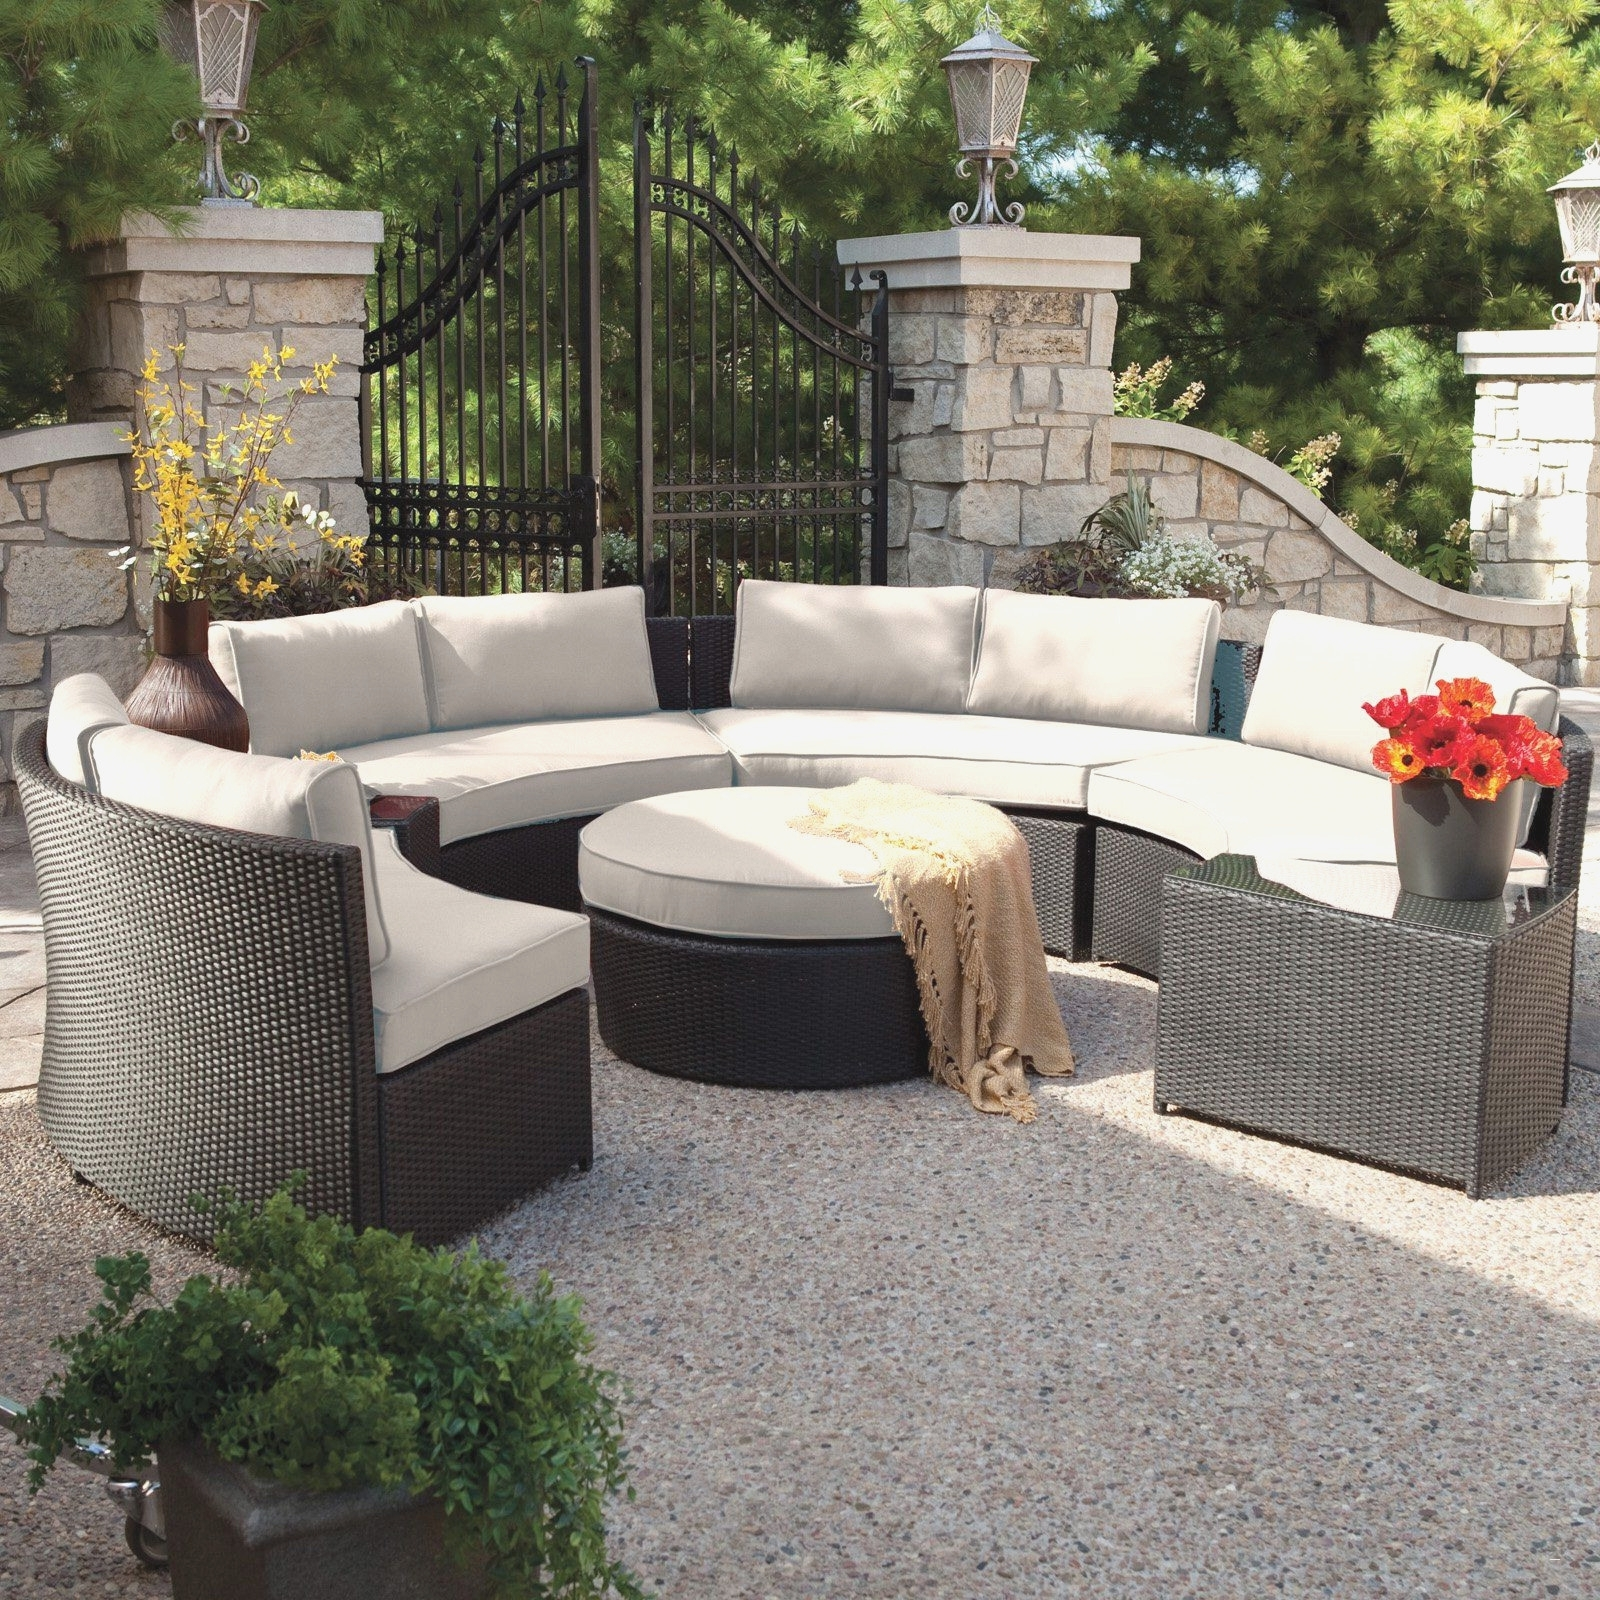 Outdoor Patio Couch Best Of Outdoor Patio Furniture Conversation In Most Current Patio Sectional Conversation Sets (View 12 of 20)